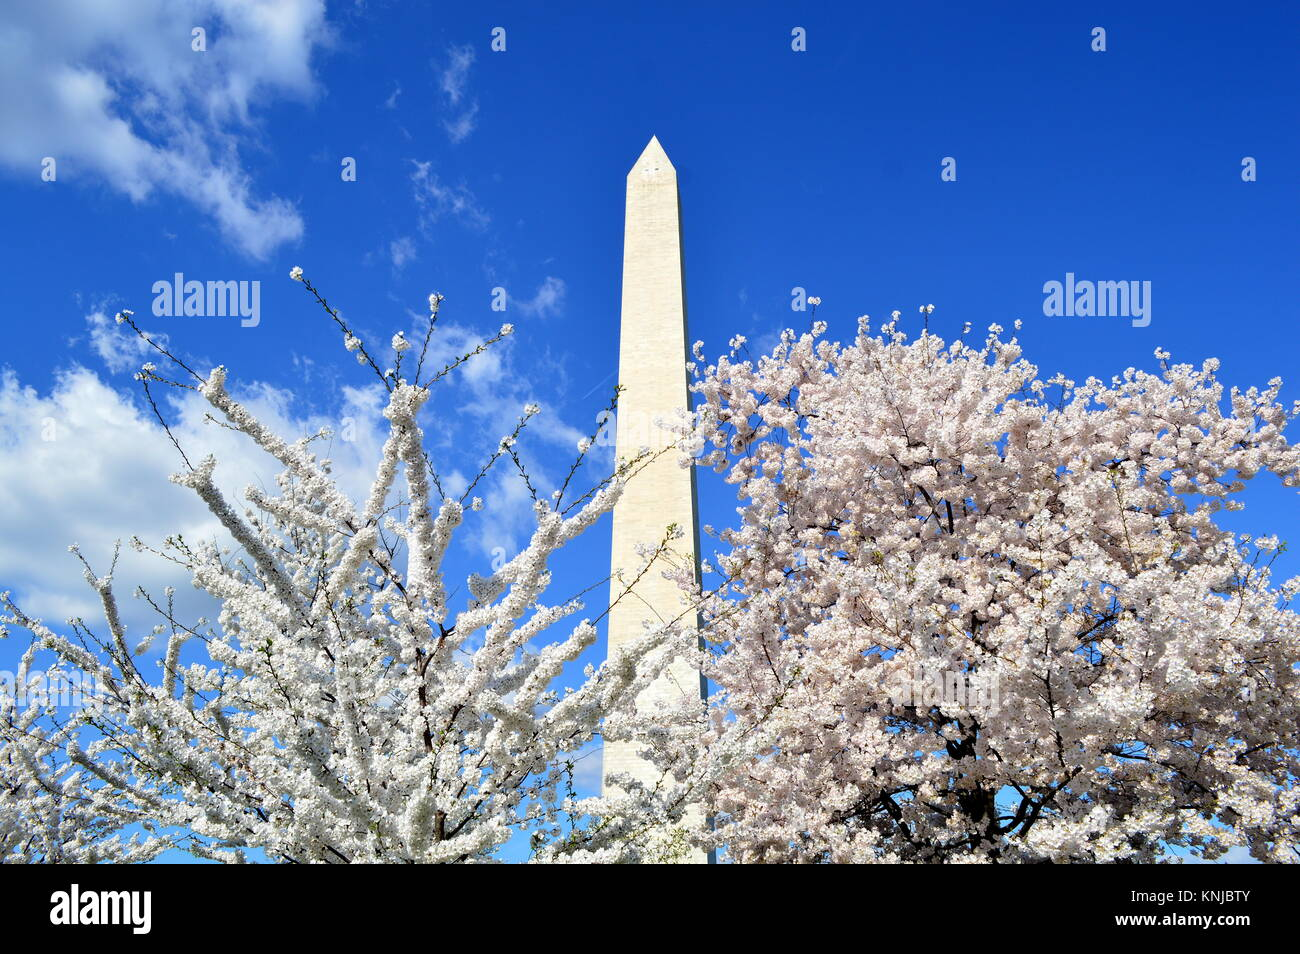 Washignton DC, Columbia, USA - April 11, 2015: Washington Monument and cherry trees in bloom - Stock Image